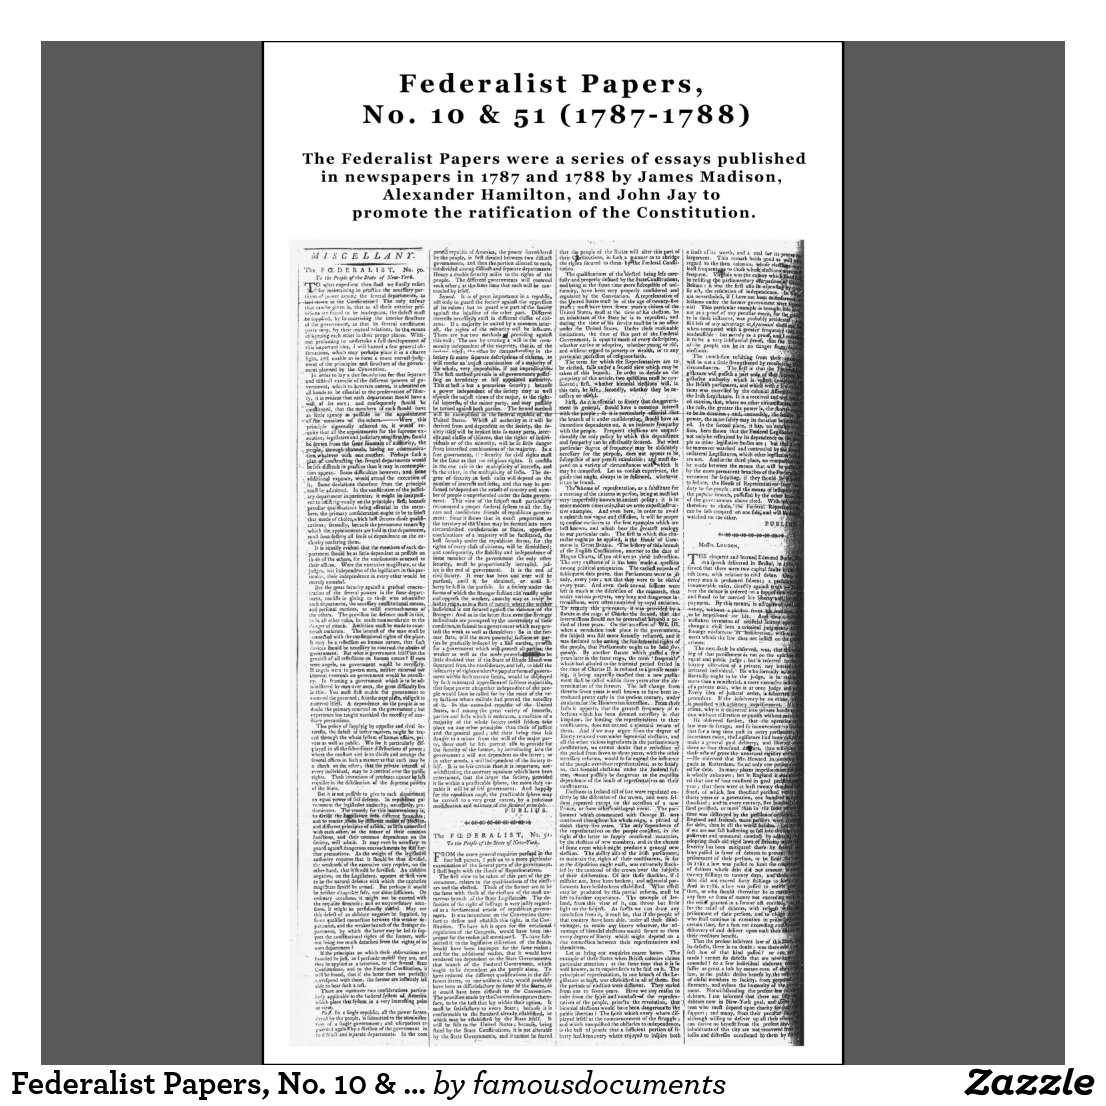 analysis of federalist paper no 10 james James madison (29 articles: no 10, 14, 18–20  statistical analysis has been undertaken on several occasions to try to ascertain the the federalist papers.